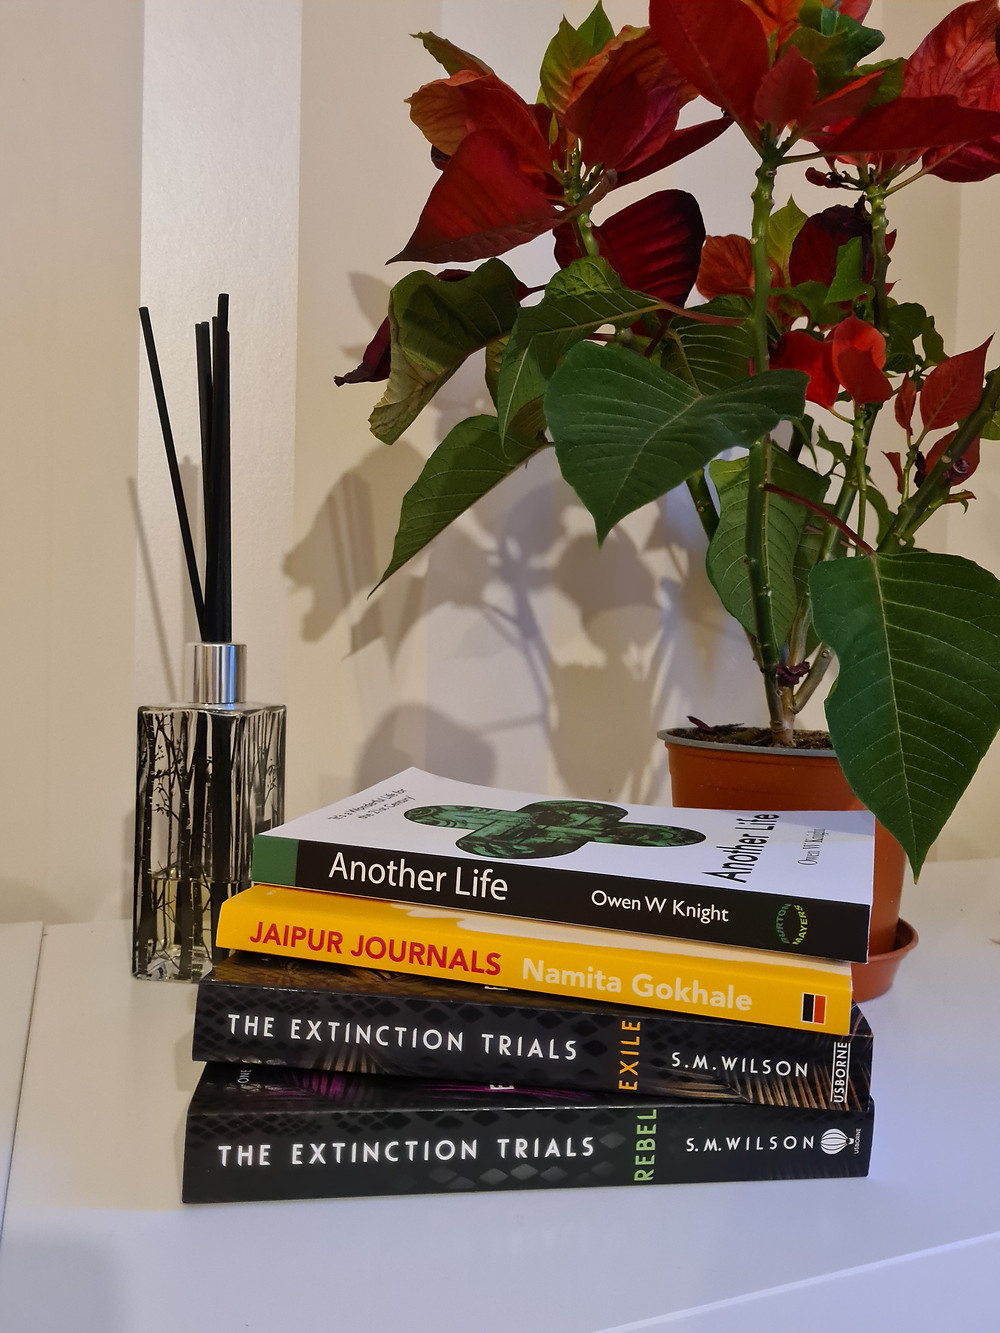 Pile of books - Extinction trials, Jaipur Journals and Another life